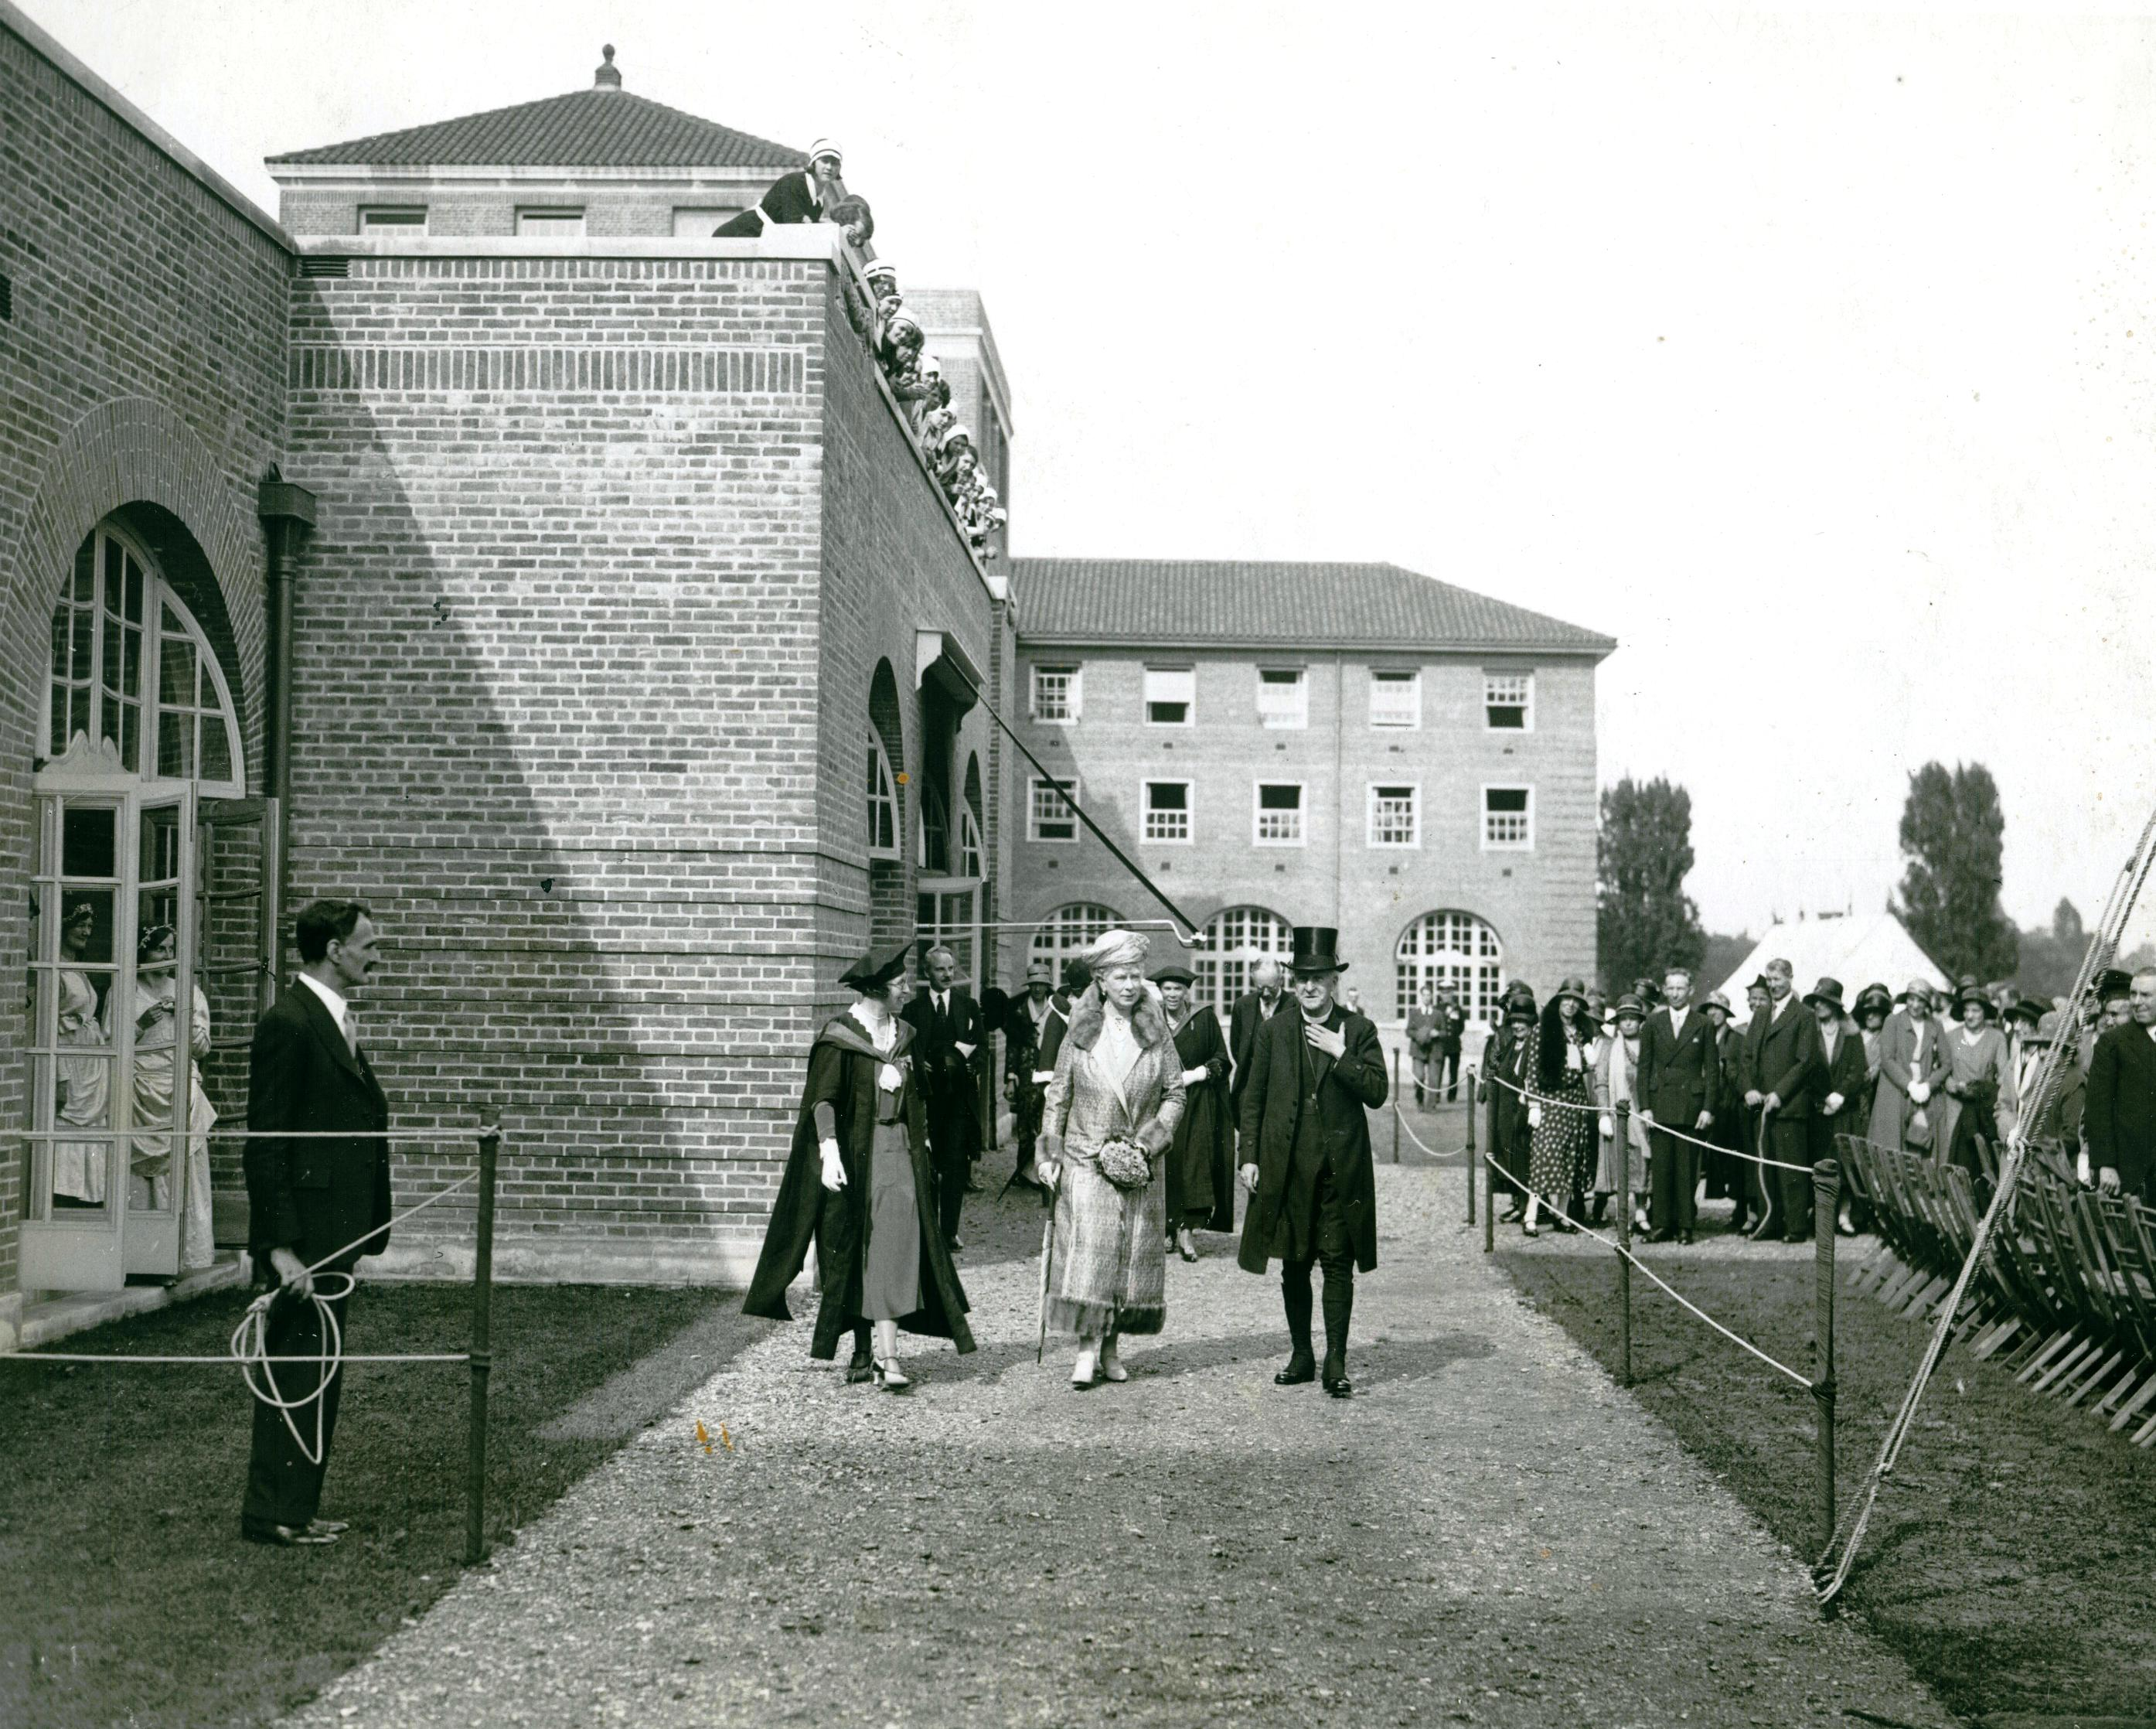 Opening of Putney campus by Queen Mary, 1931